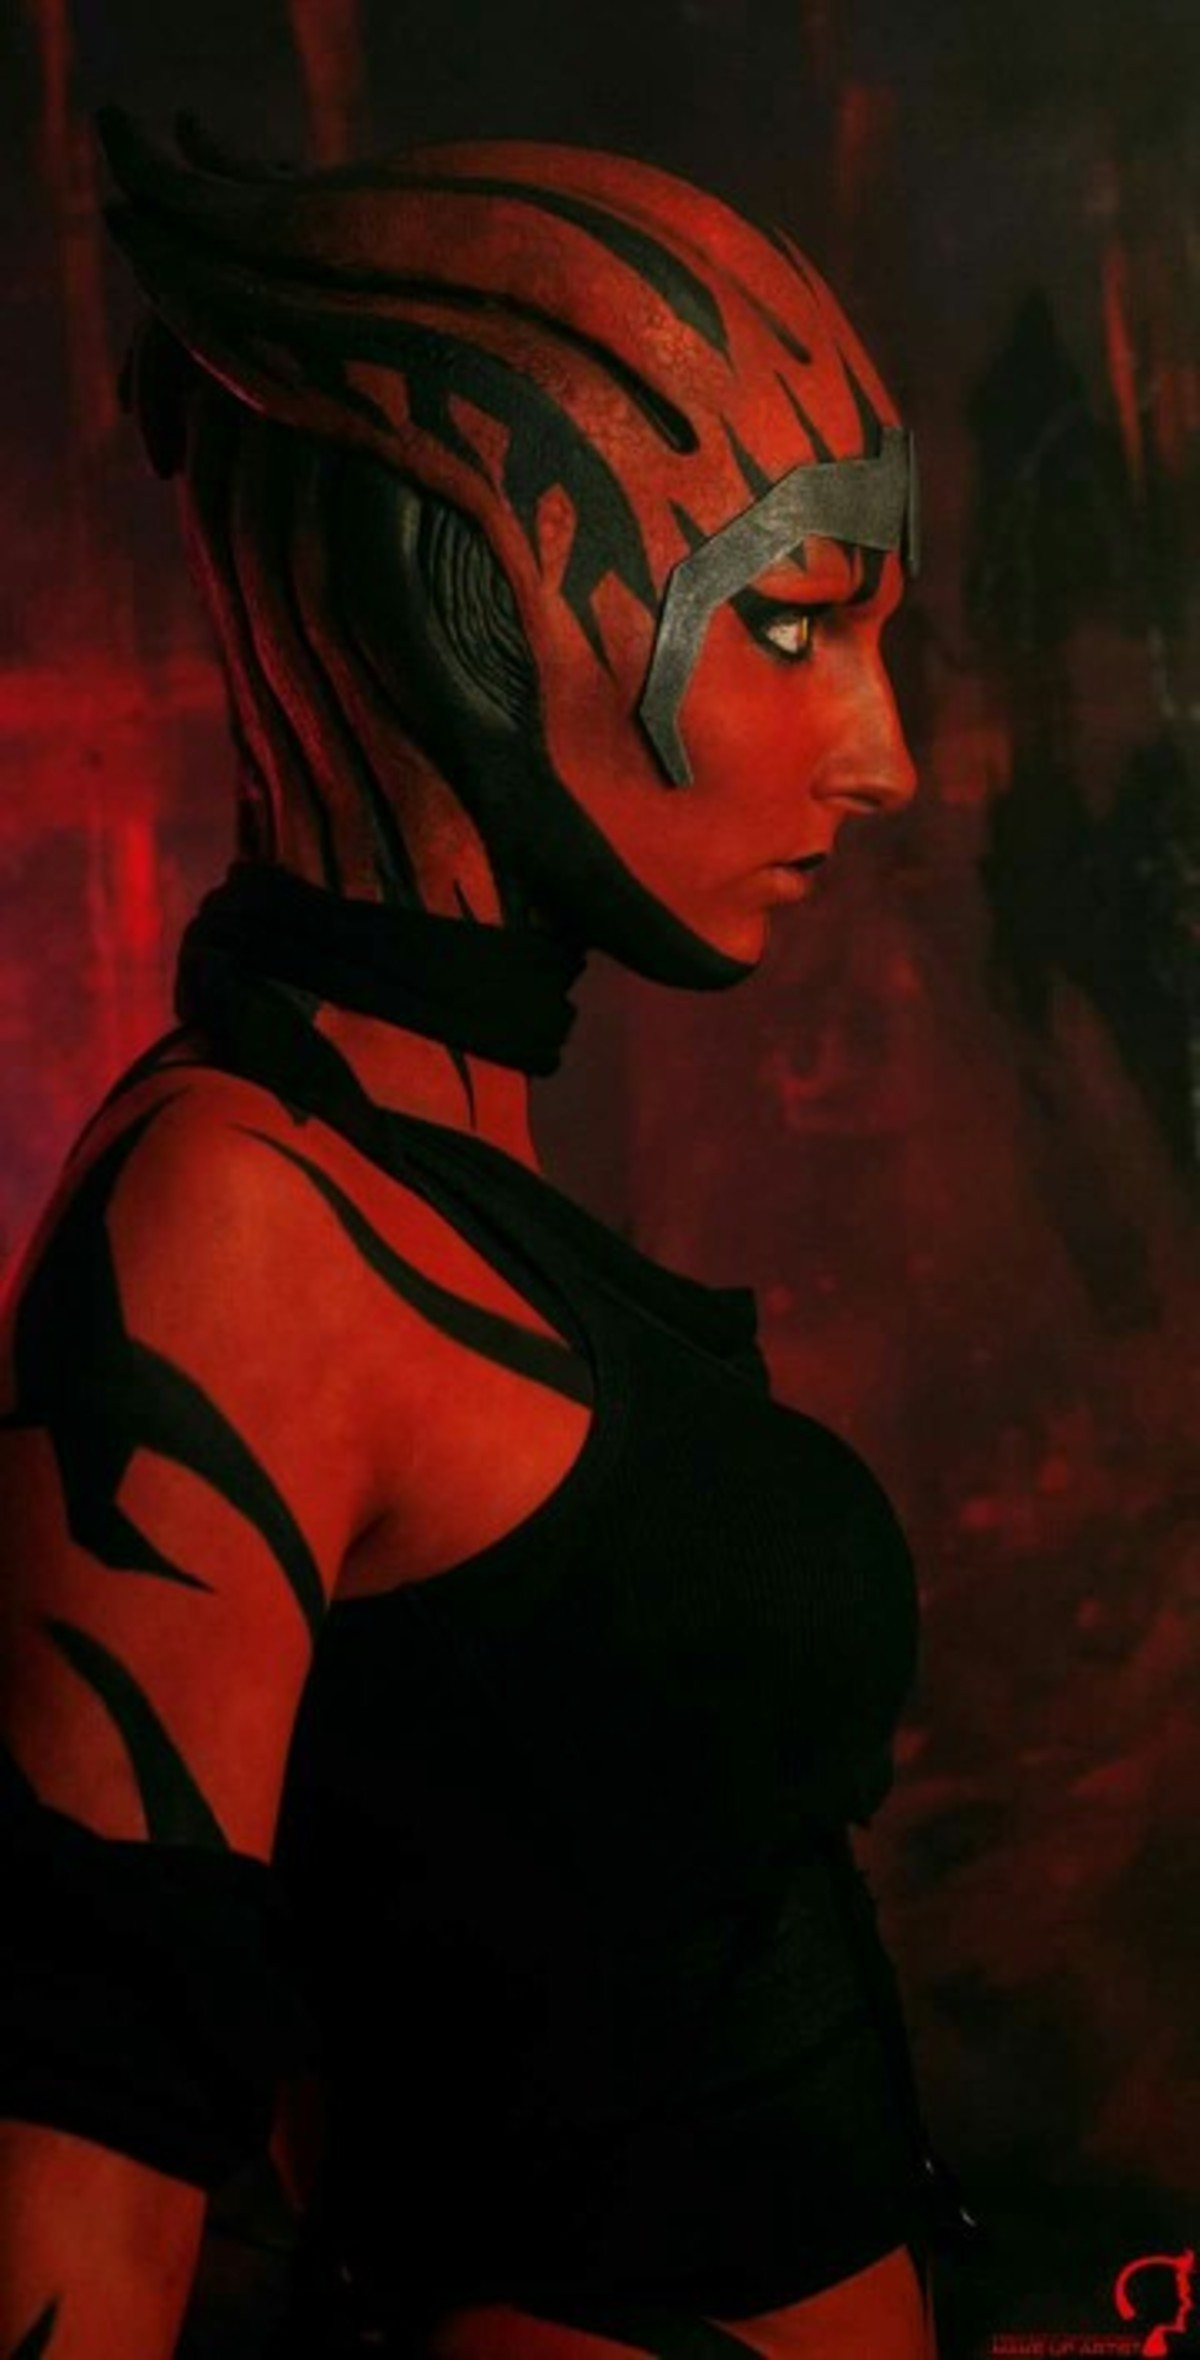 MASS EFFECT UBER COMP. join list: MEUberComps (243 subs)Mention History some kind of asari / twi'lek hybrid. Between 2014 and 2017 I've played the Mass Effect trilogy 4 times and you can bet your asses I will most likely play it again later this year